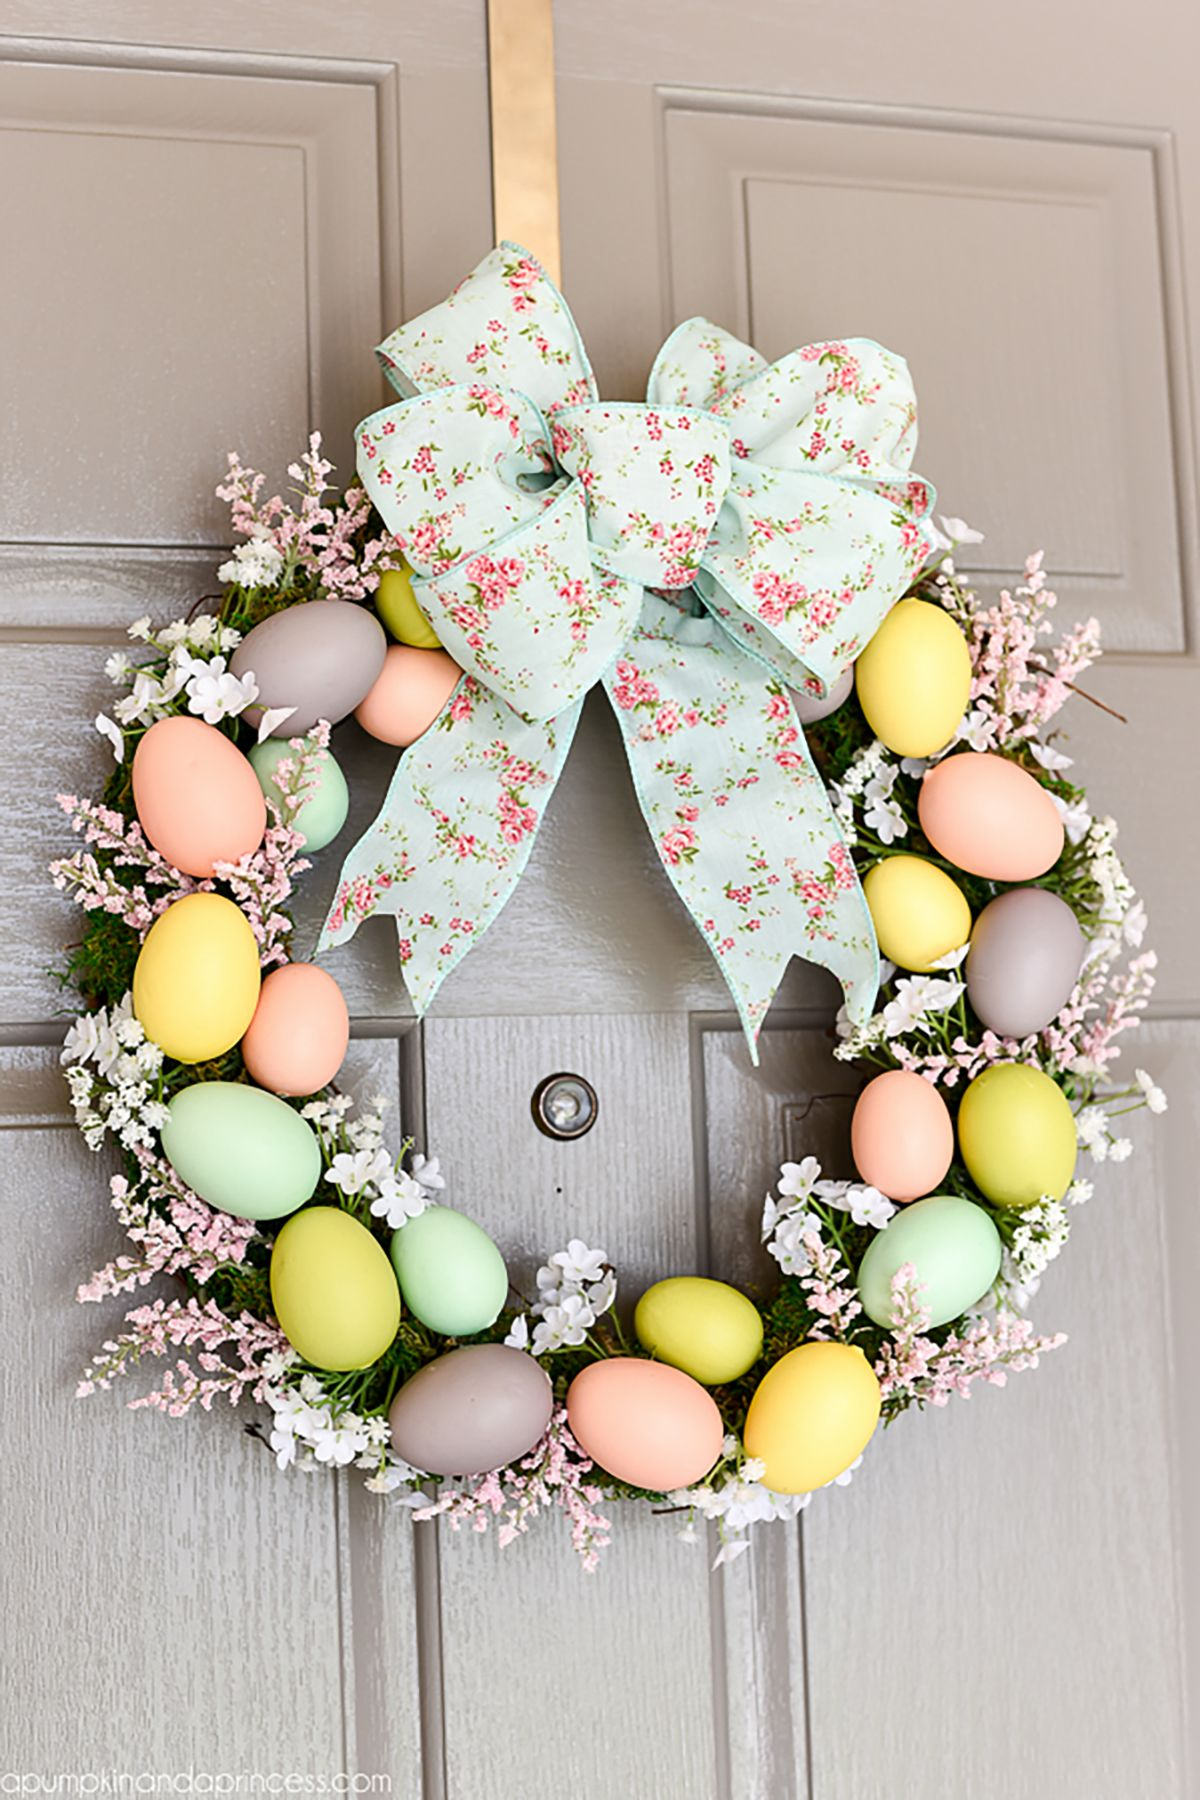 and a easter my stolen decorations wreaths pin grandparents spring it ago sad looked until of days one s world was grave gorgeous decoration years cross made decor for these